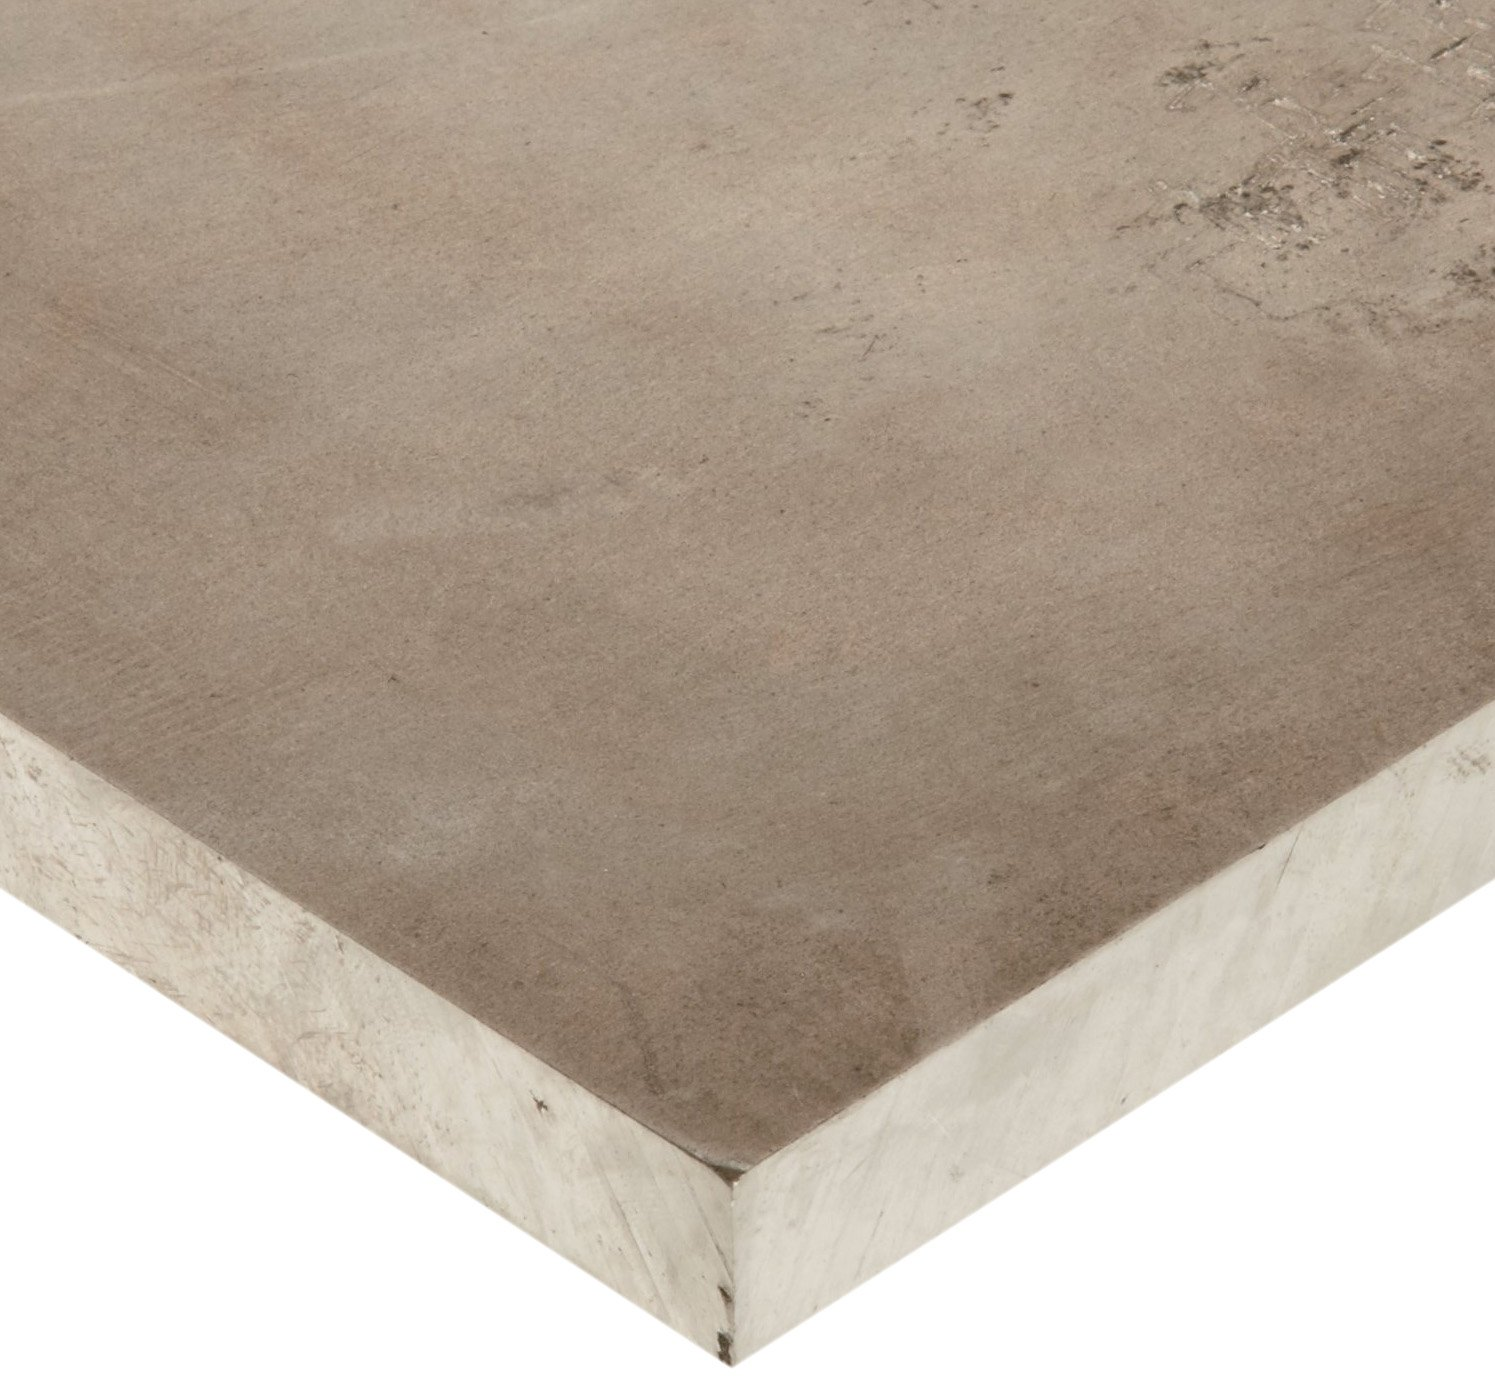 Magnesium Sheet, Unpolished (Mill) Finish, H24 Temper, 1'' Thickness, 6'' Width, 6'' Length by Small Parts